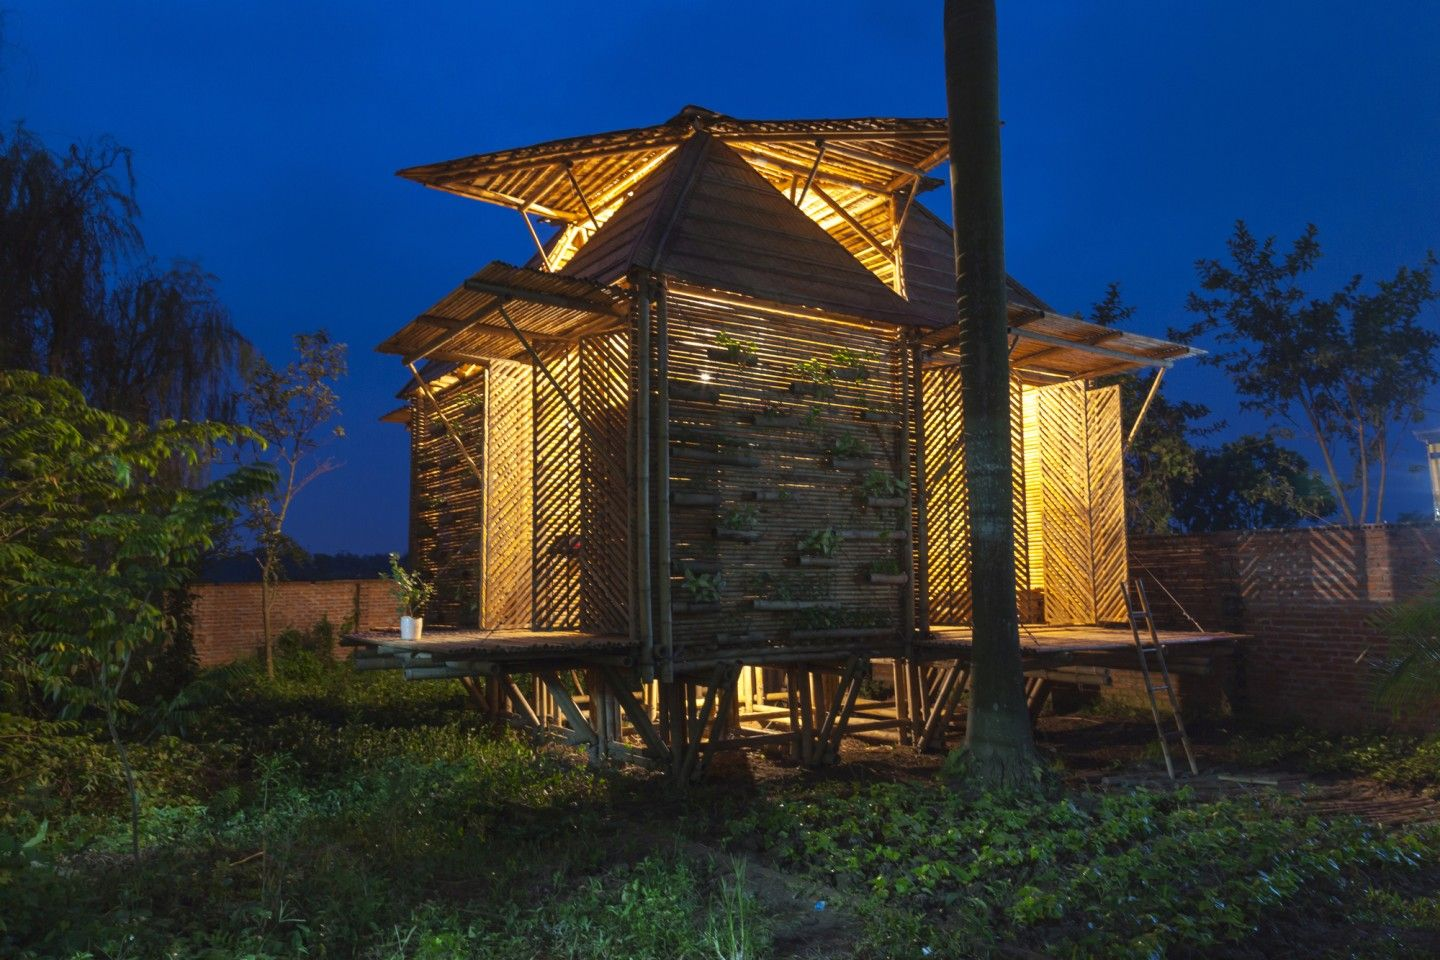 Low-cost Blooming Bamboo home built to withstand floods